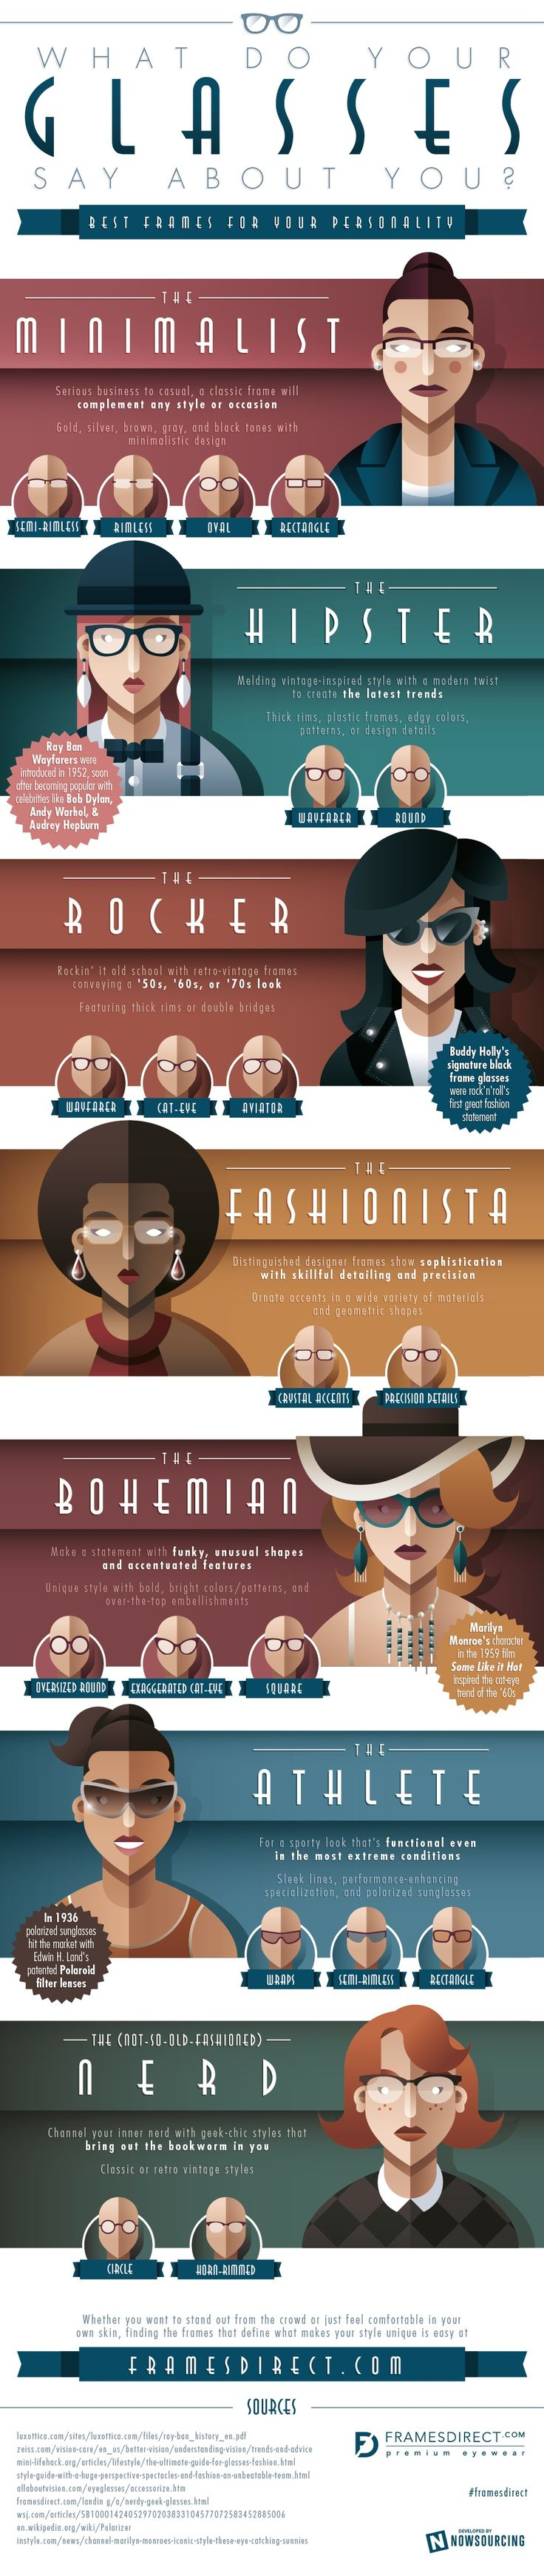 Infographic: What Your Glasses Say About Your Personality - DesignTAXI.com